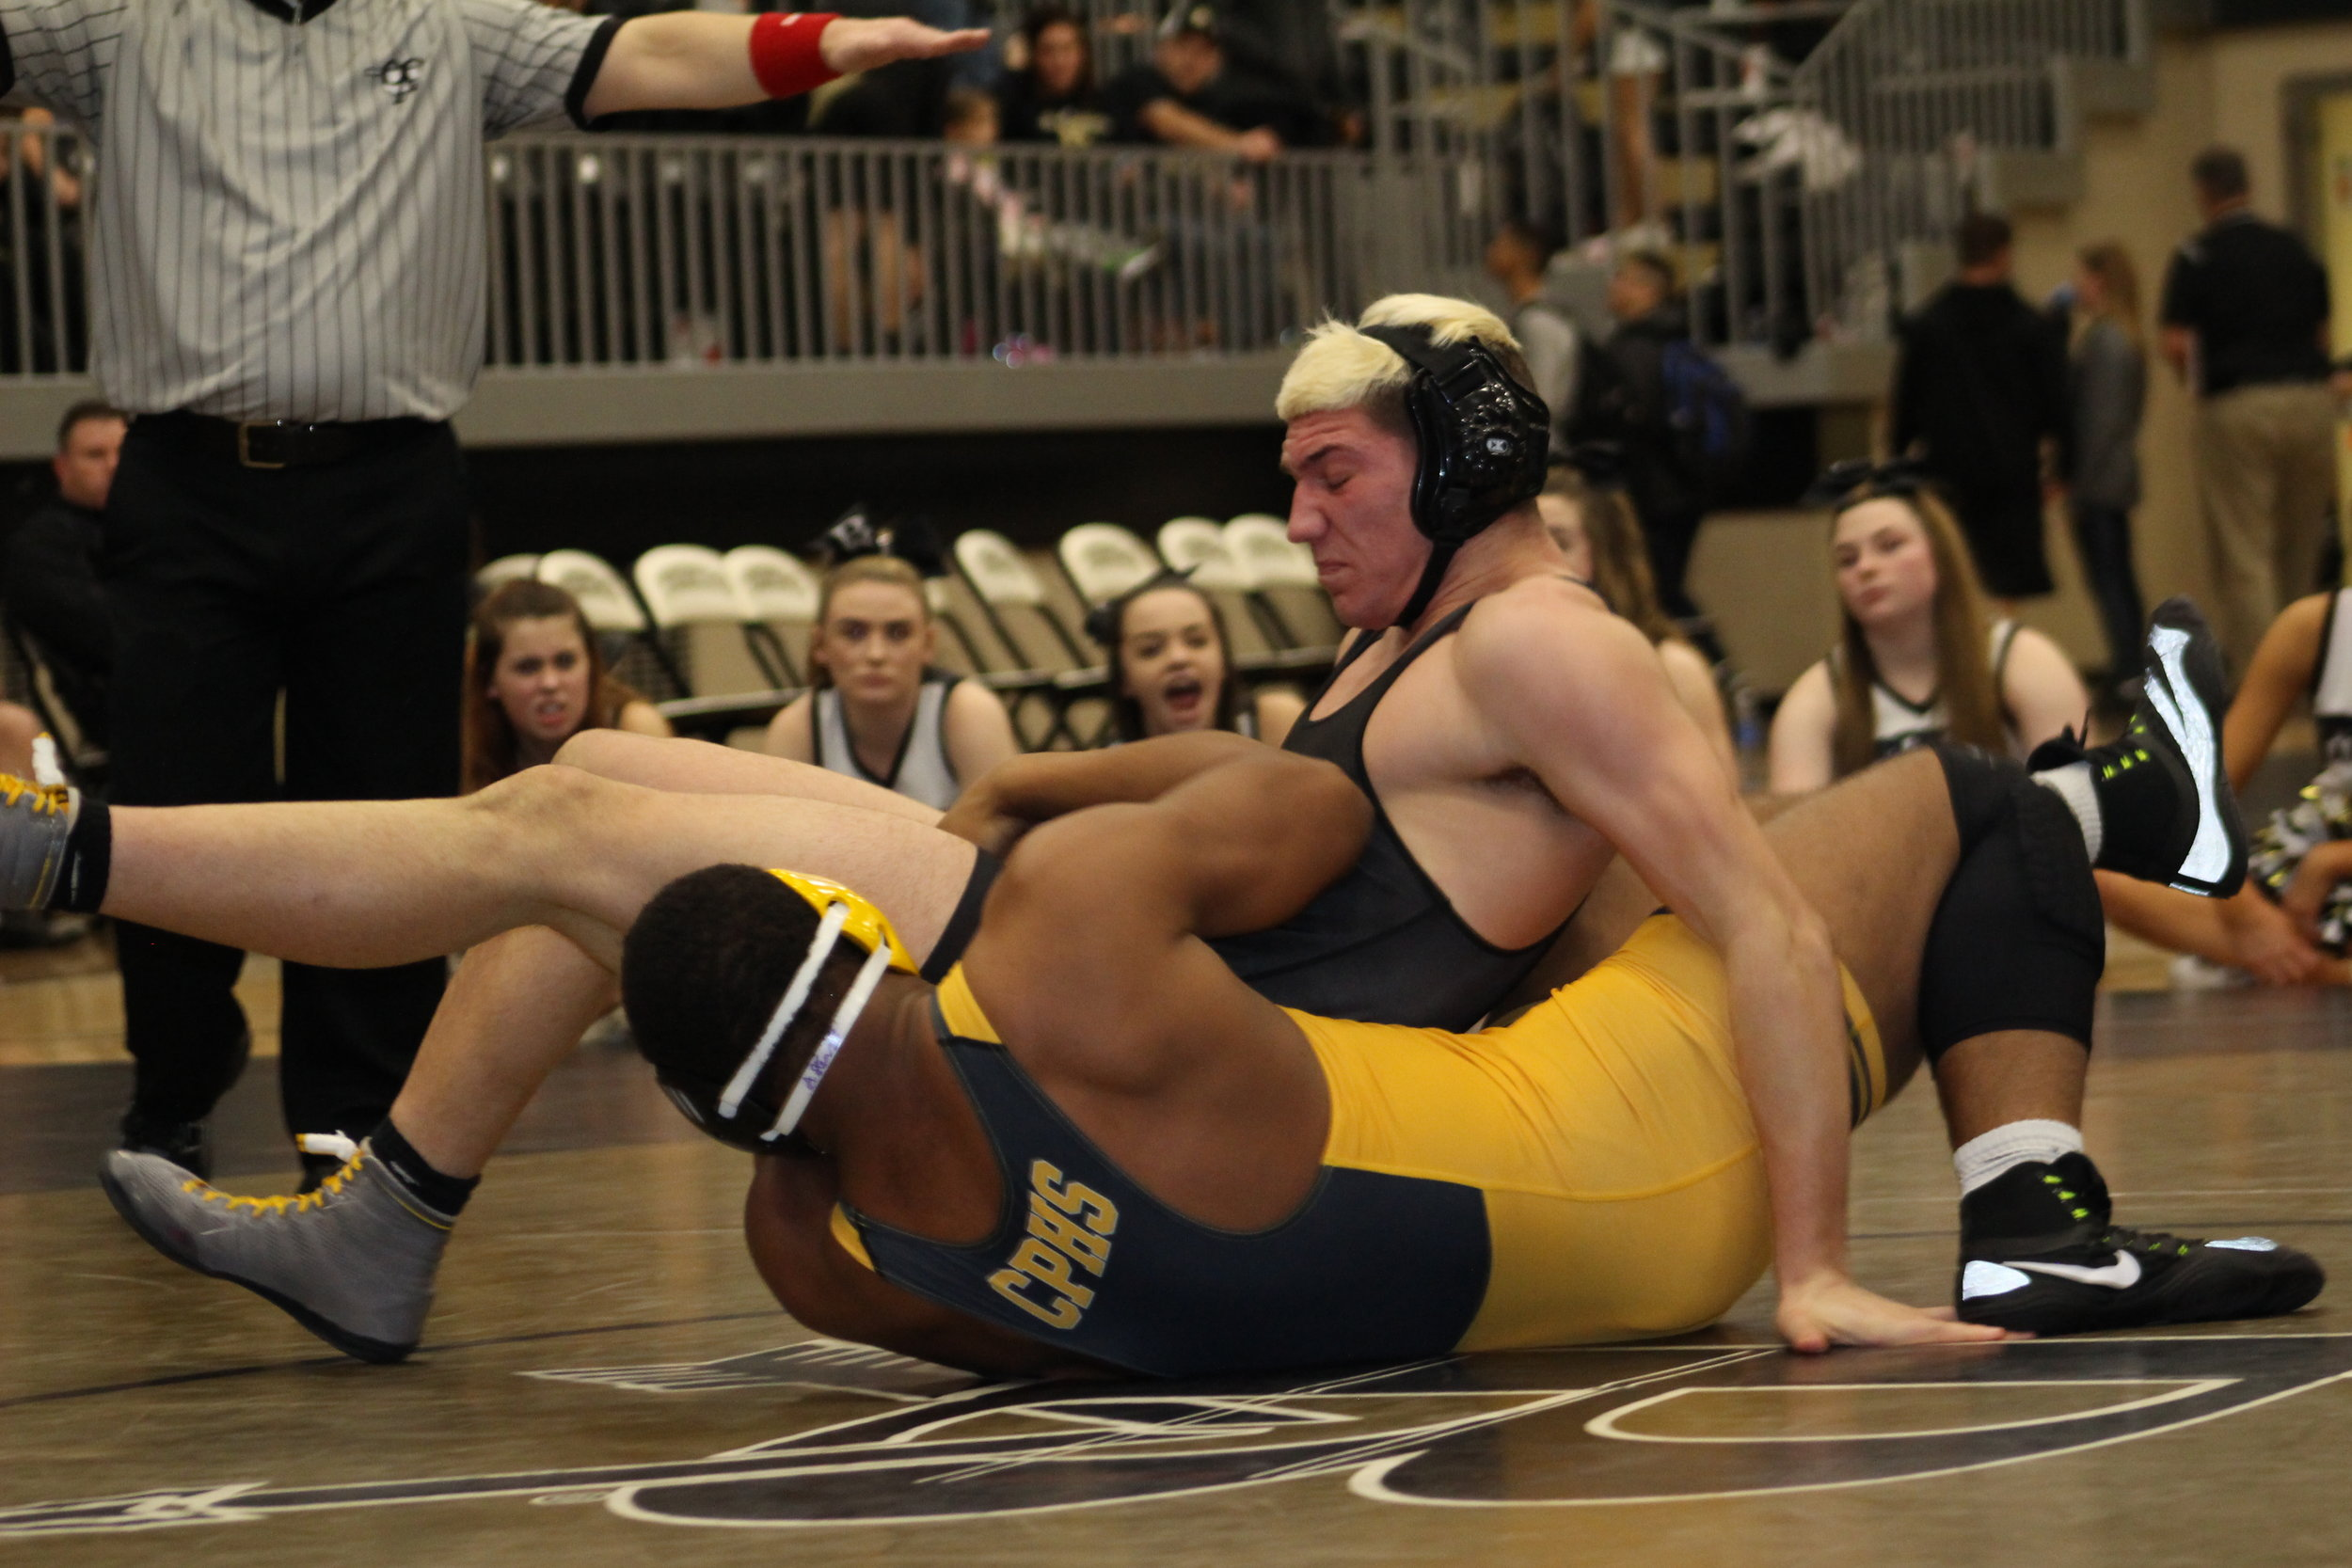 One of the most exciting matches of the season, Delvin Jordan defeated defending State Champion Zach Marcheselli 4-3 in the Broken Arrow dual.